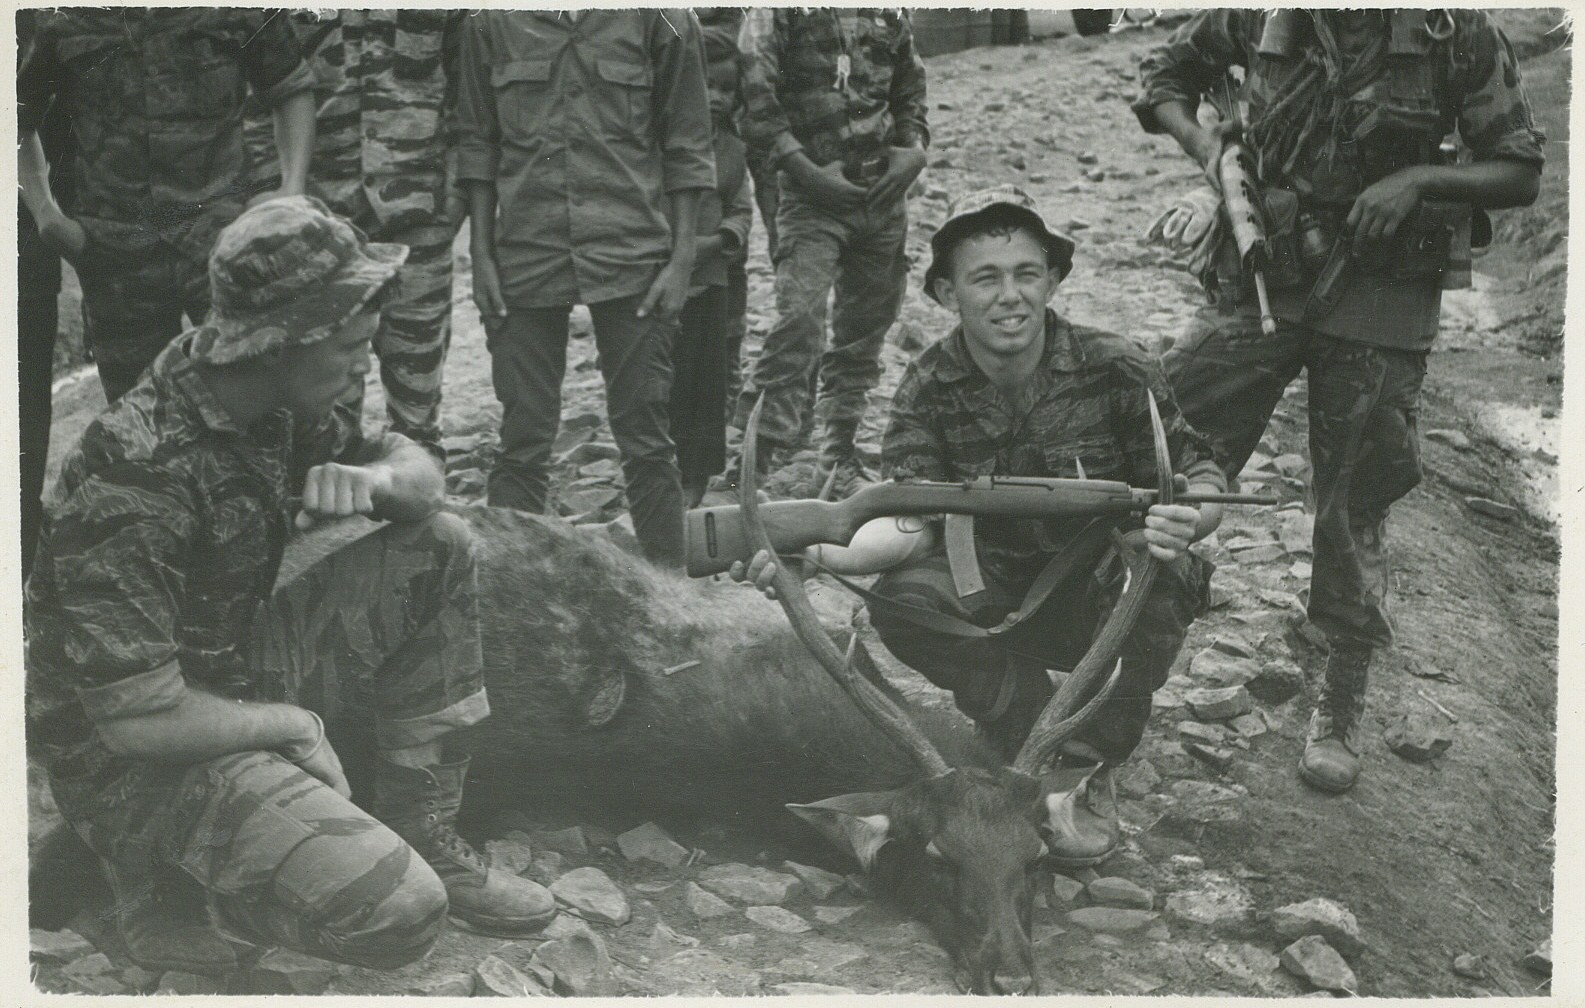 Plei do lim special forces A camp central highlands, Dec 1967.  Sgt Mark Miller on left, Sgt Patrick L Henshaw in center